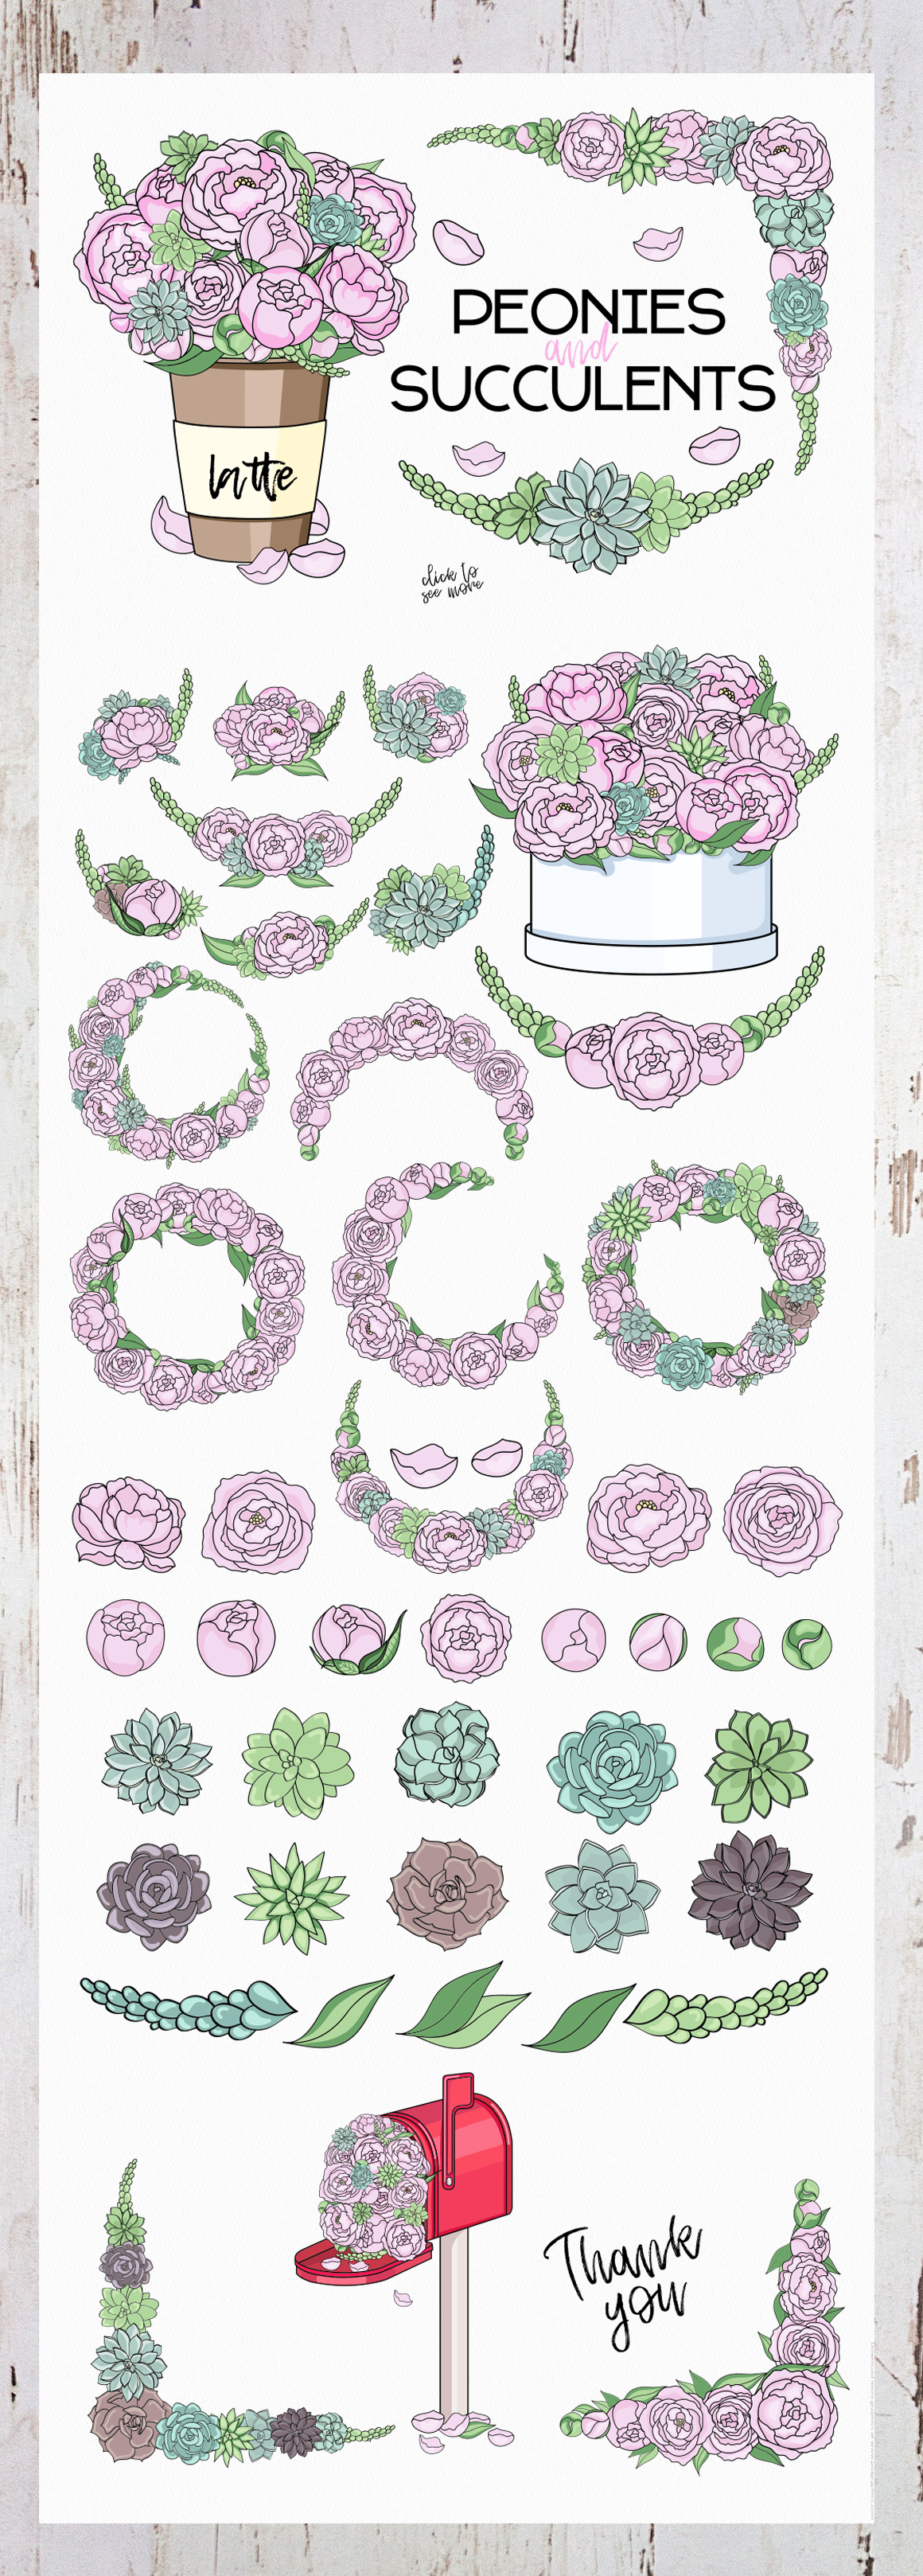 Peonies and Succulents example image 8